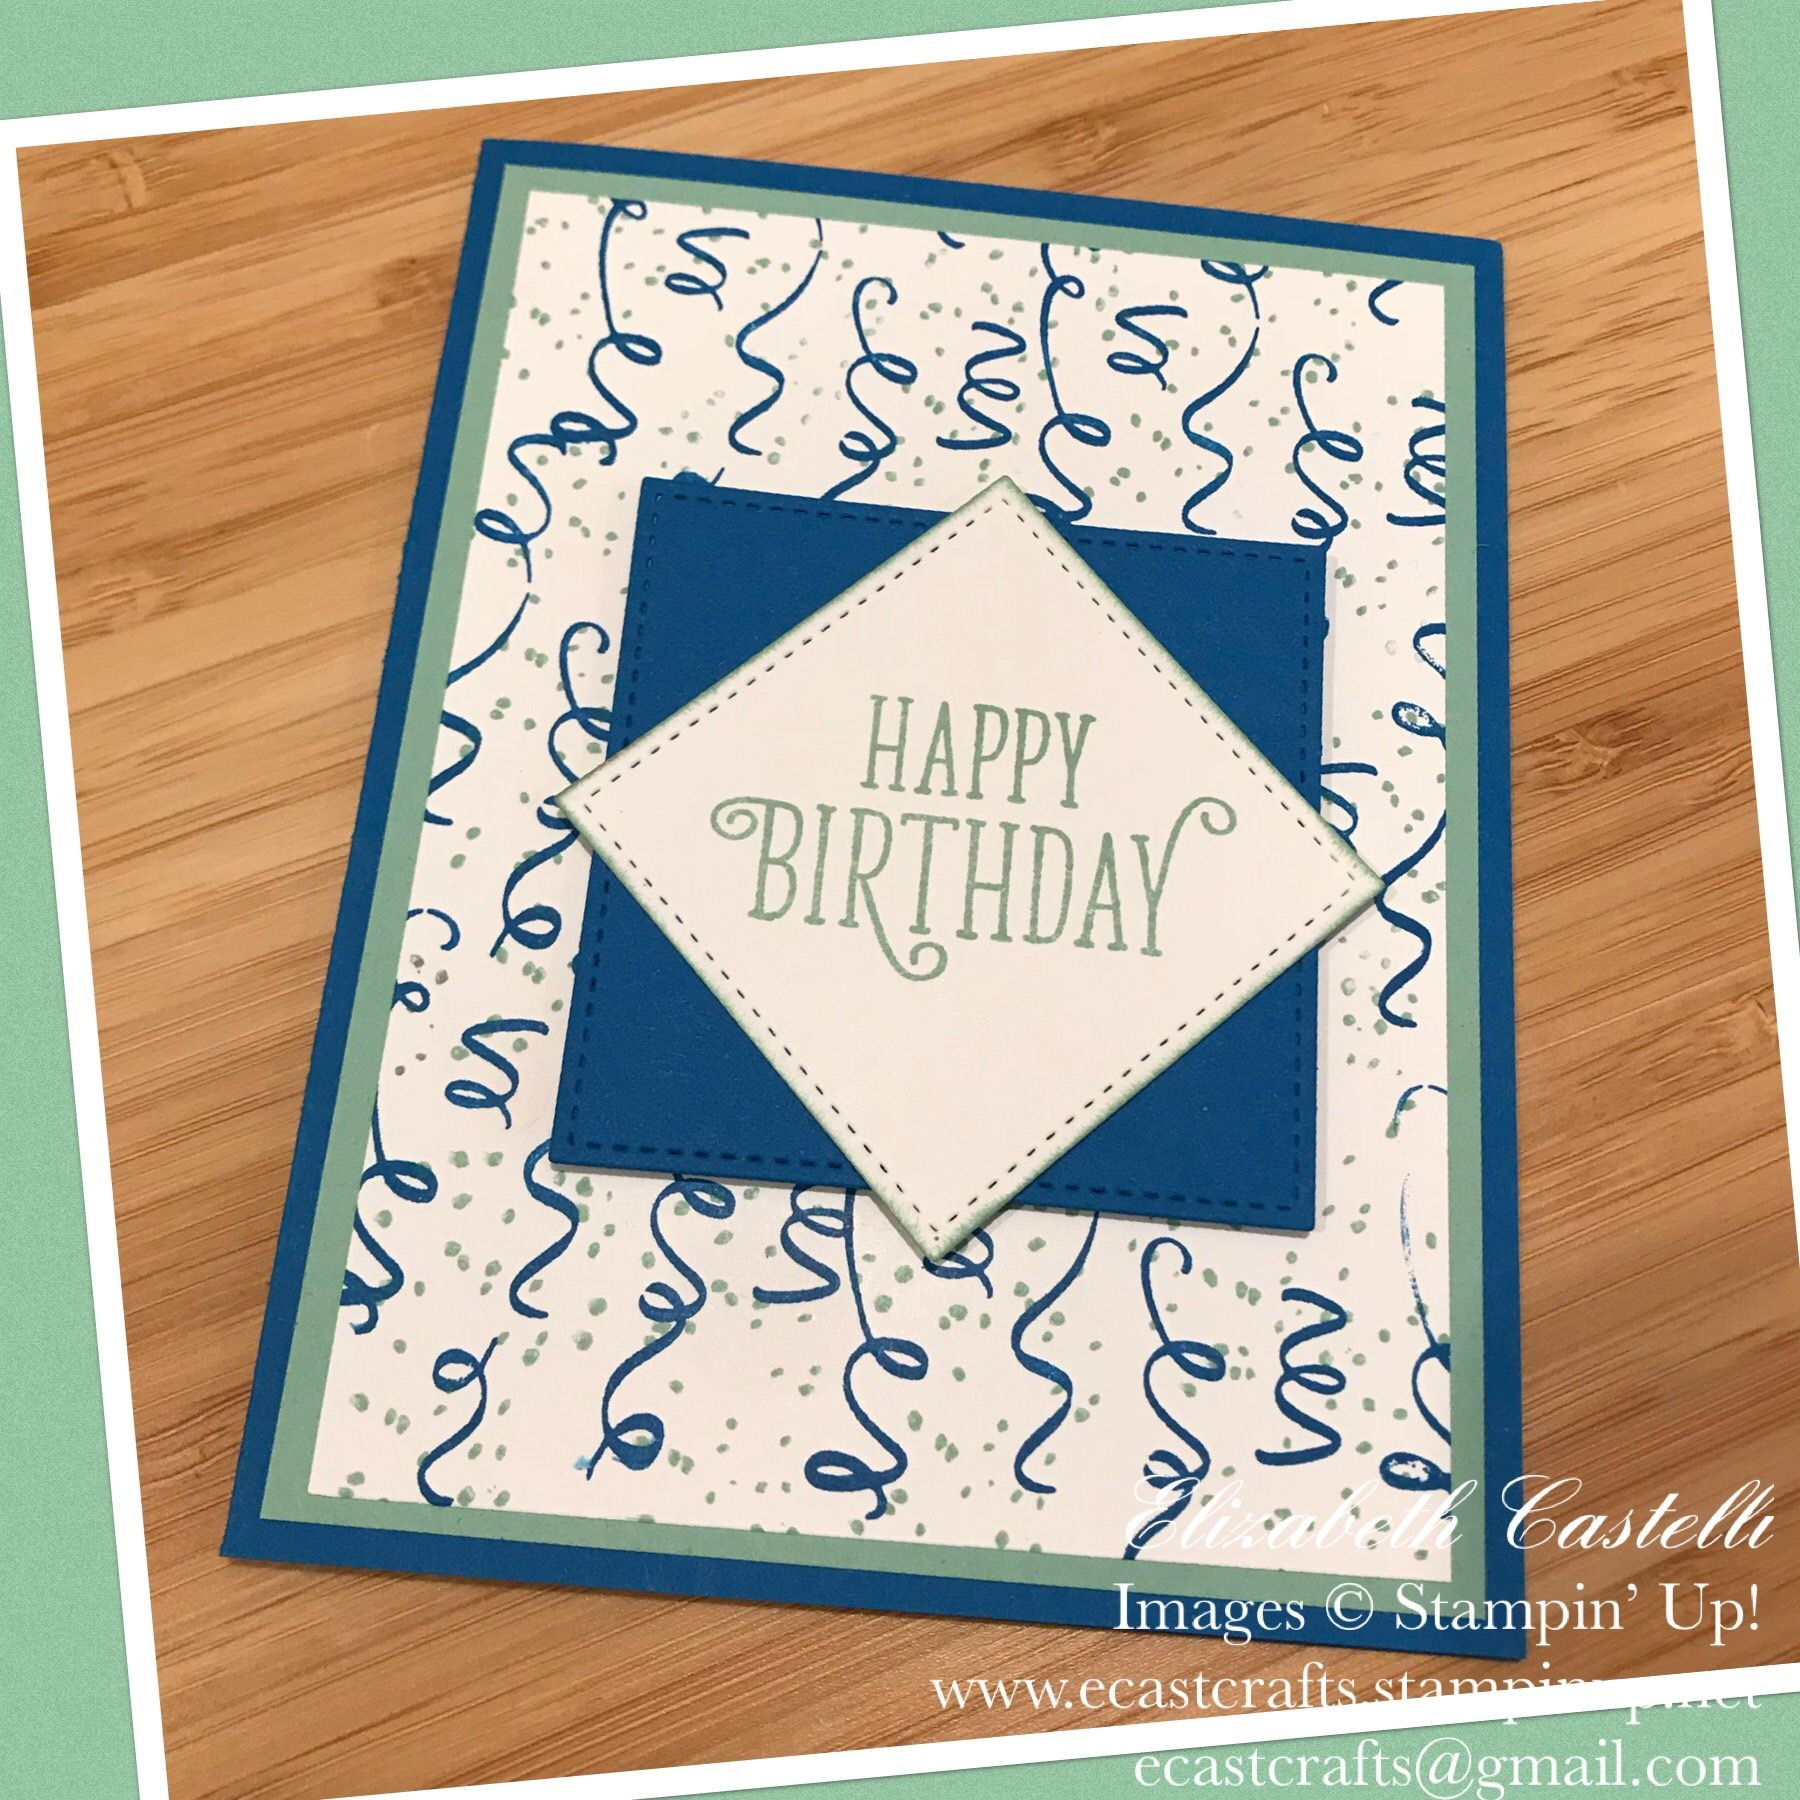 Stampin Up Birthday Backgrounds Card By Elizabeth Castelli Ecastcrafts Stampin Up Birthday Cards Birthday Greetings For Kids Kids Birthday Cards